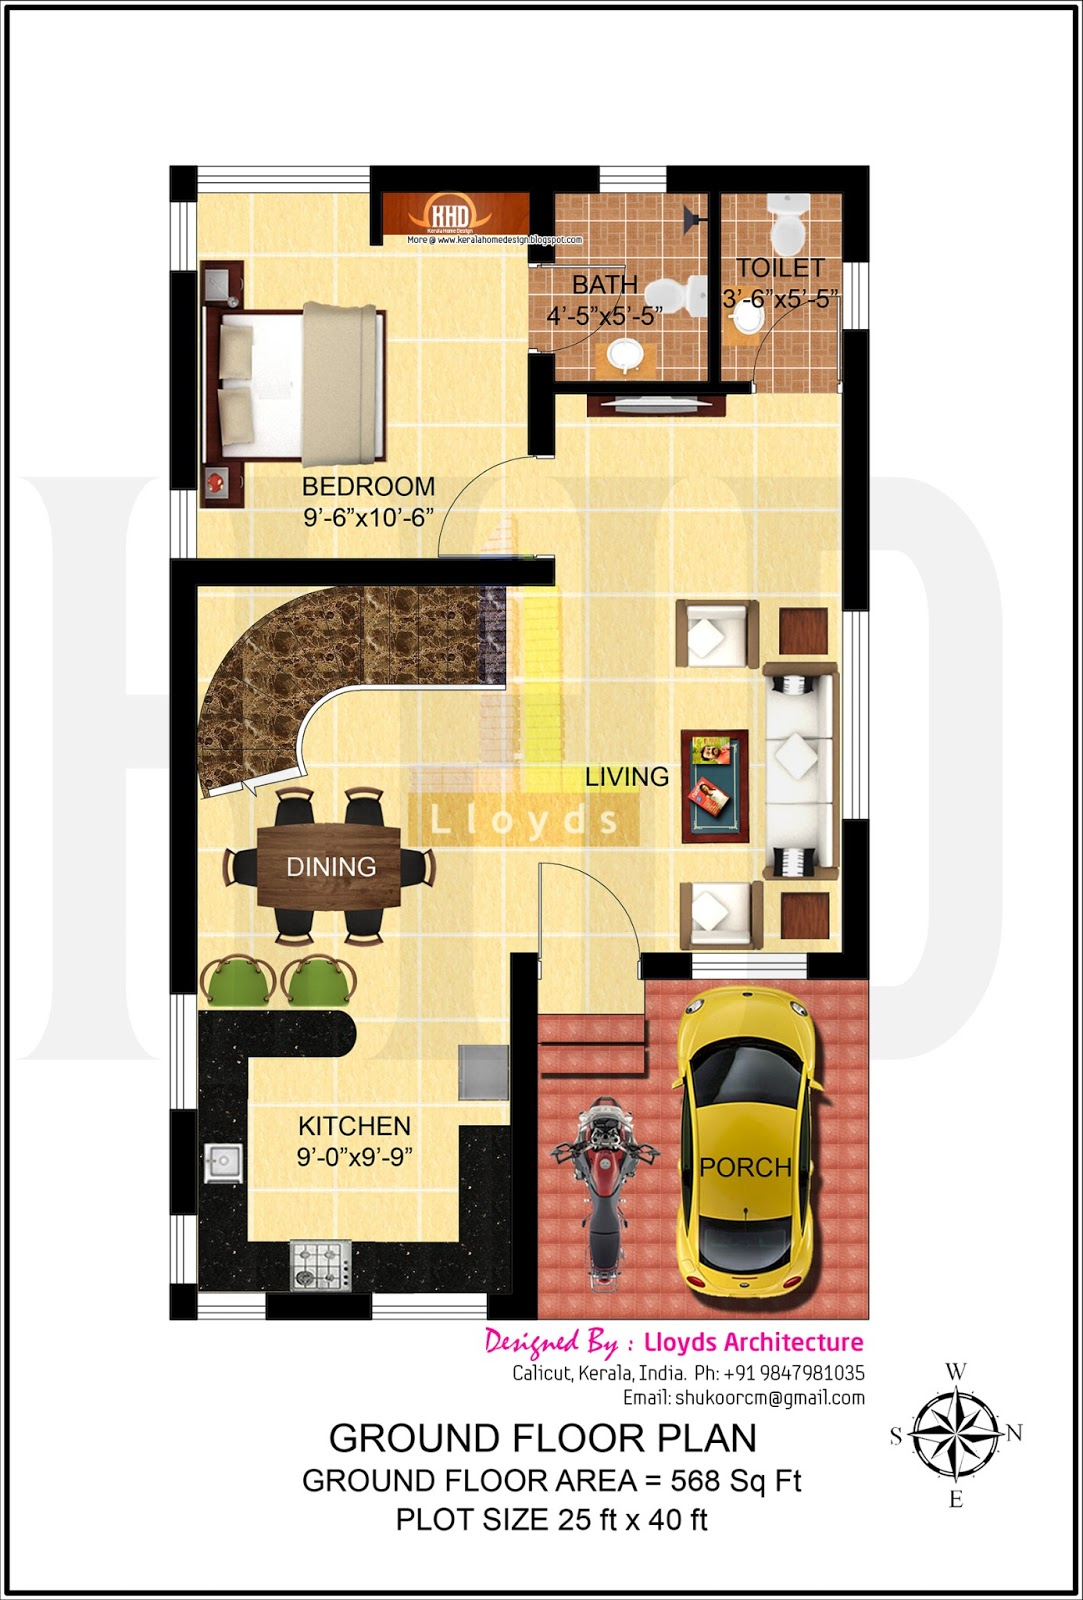 3 Bedroom House Floor Plan Design